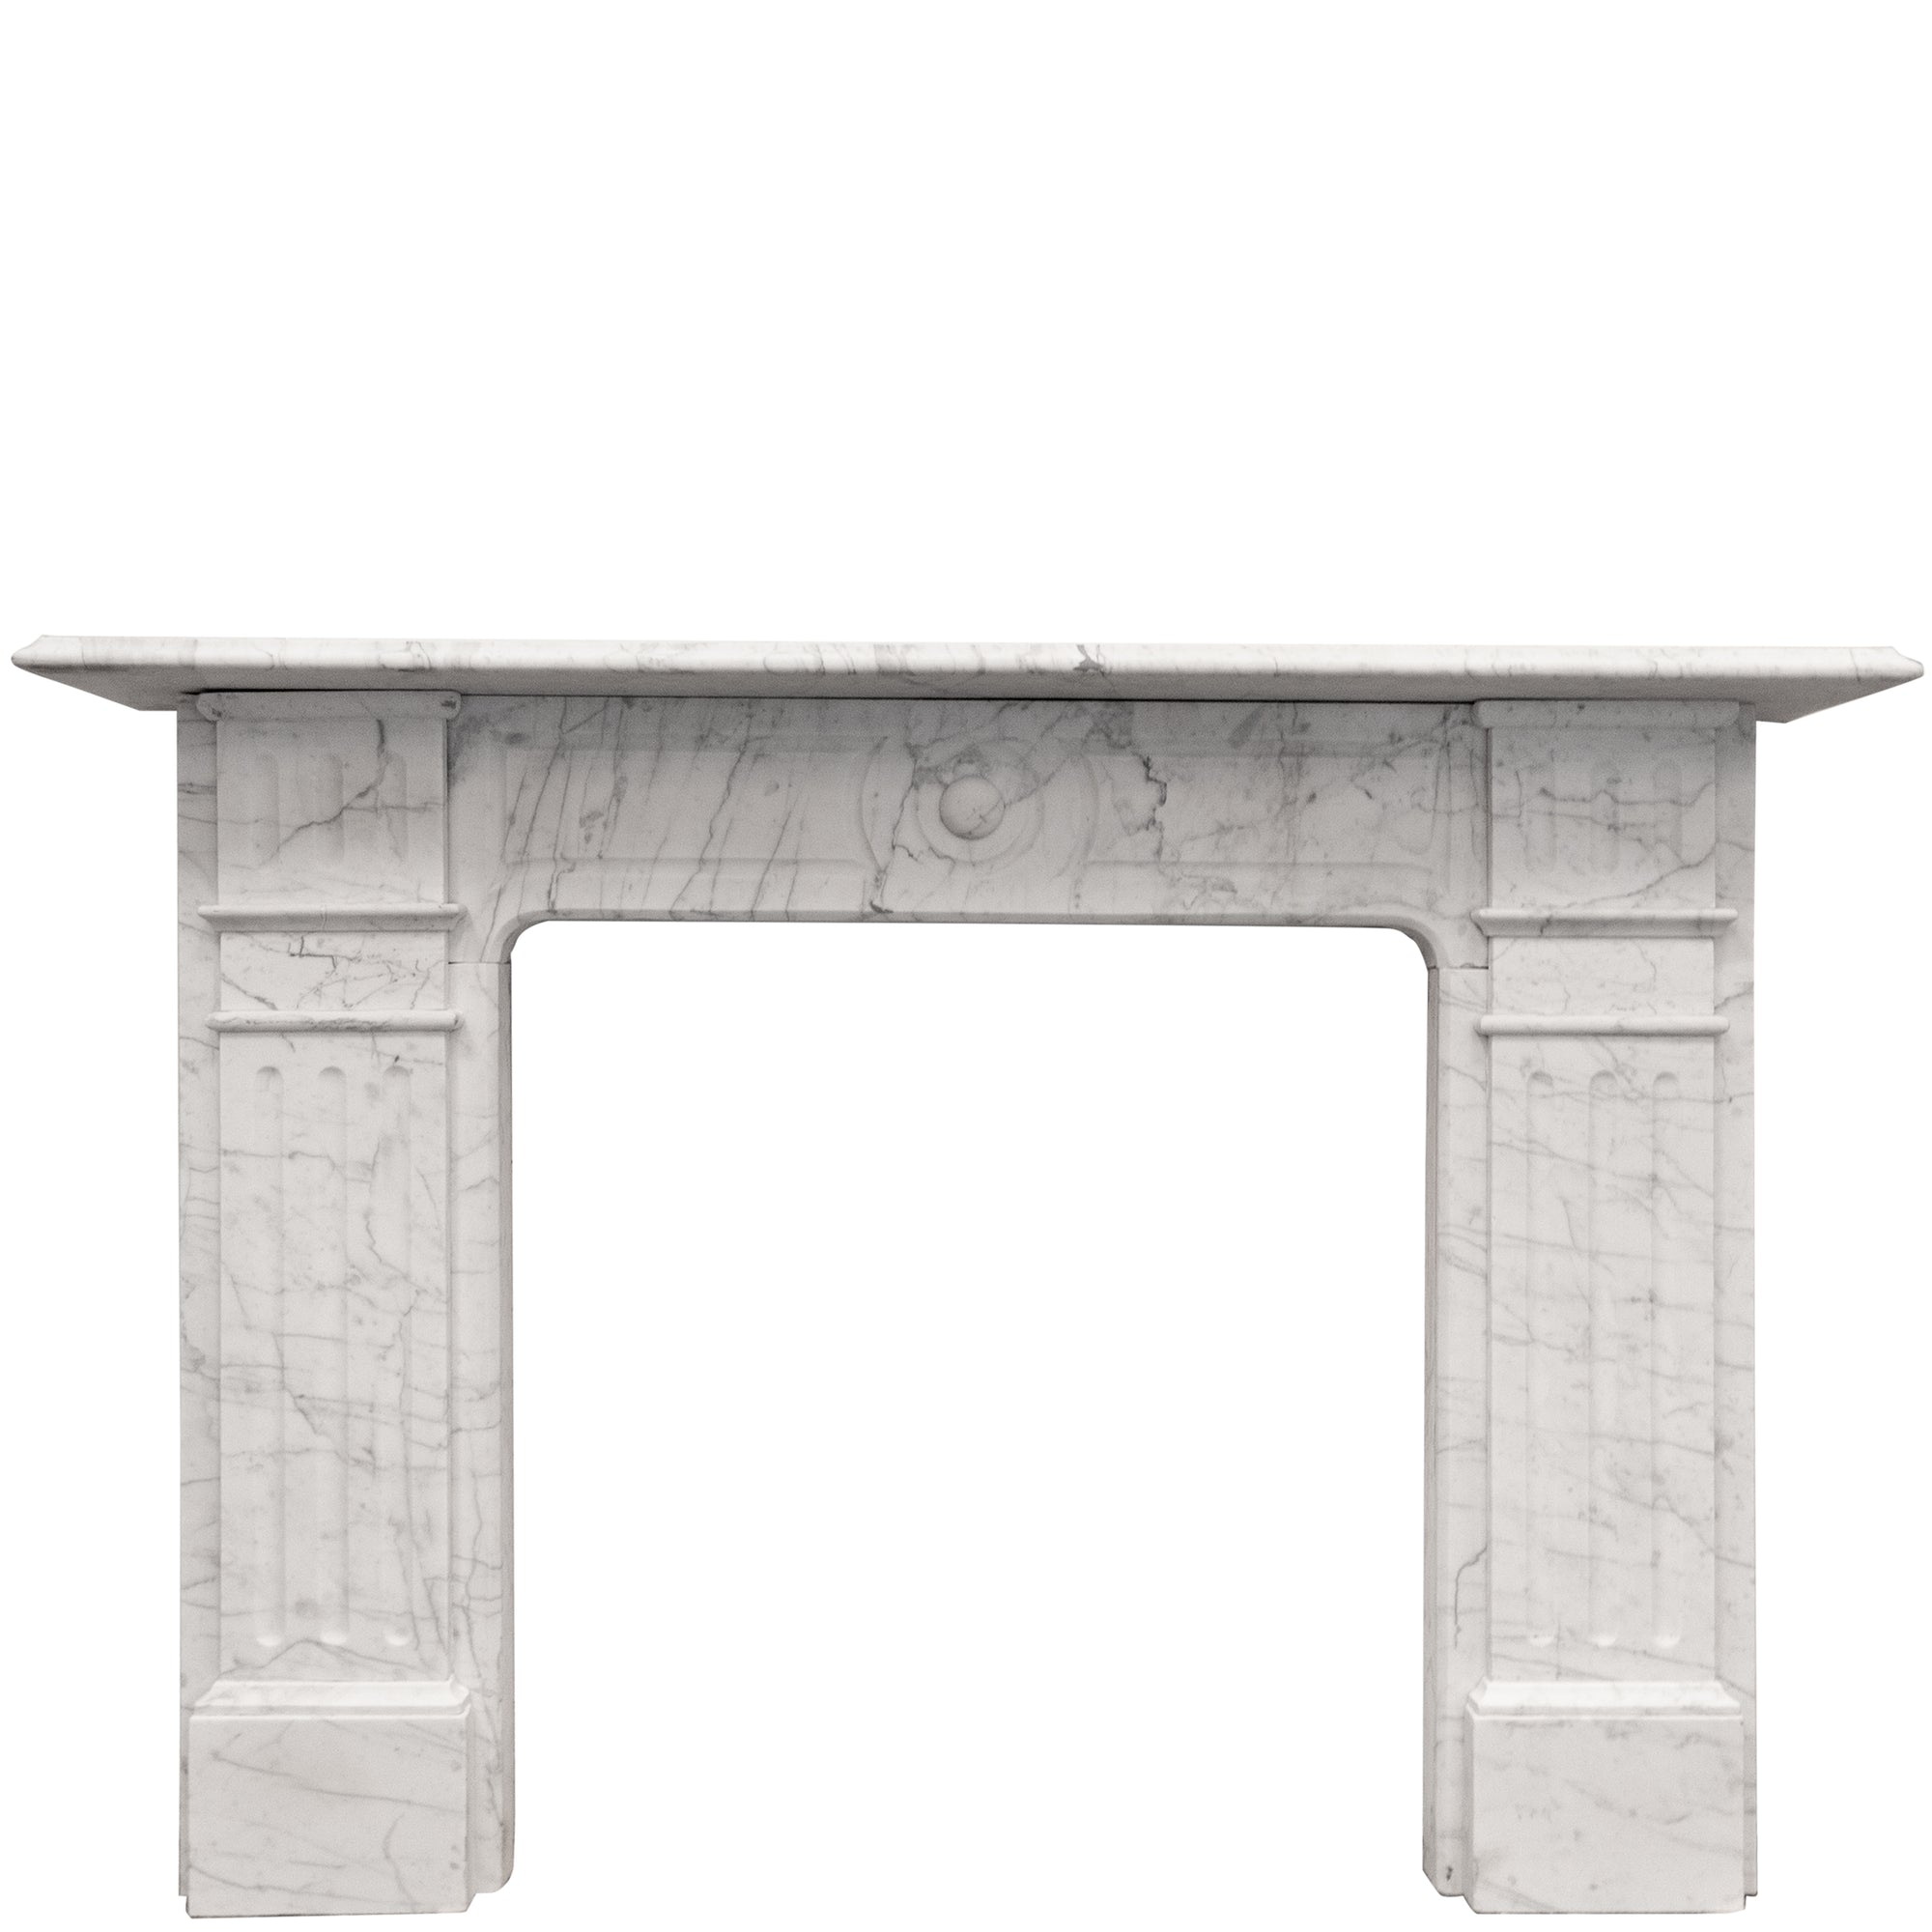 Antique Edwardian Carrara Marble Fireplace Surround | The Architectural Forum